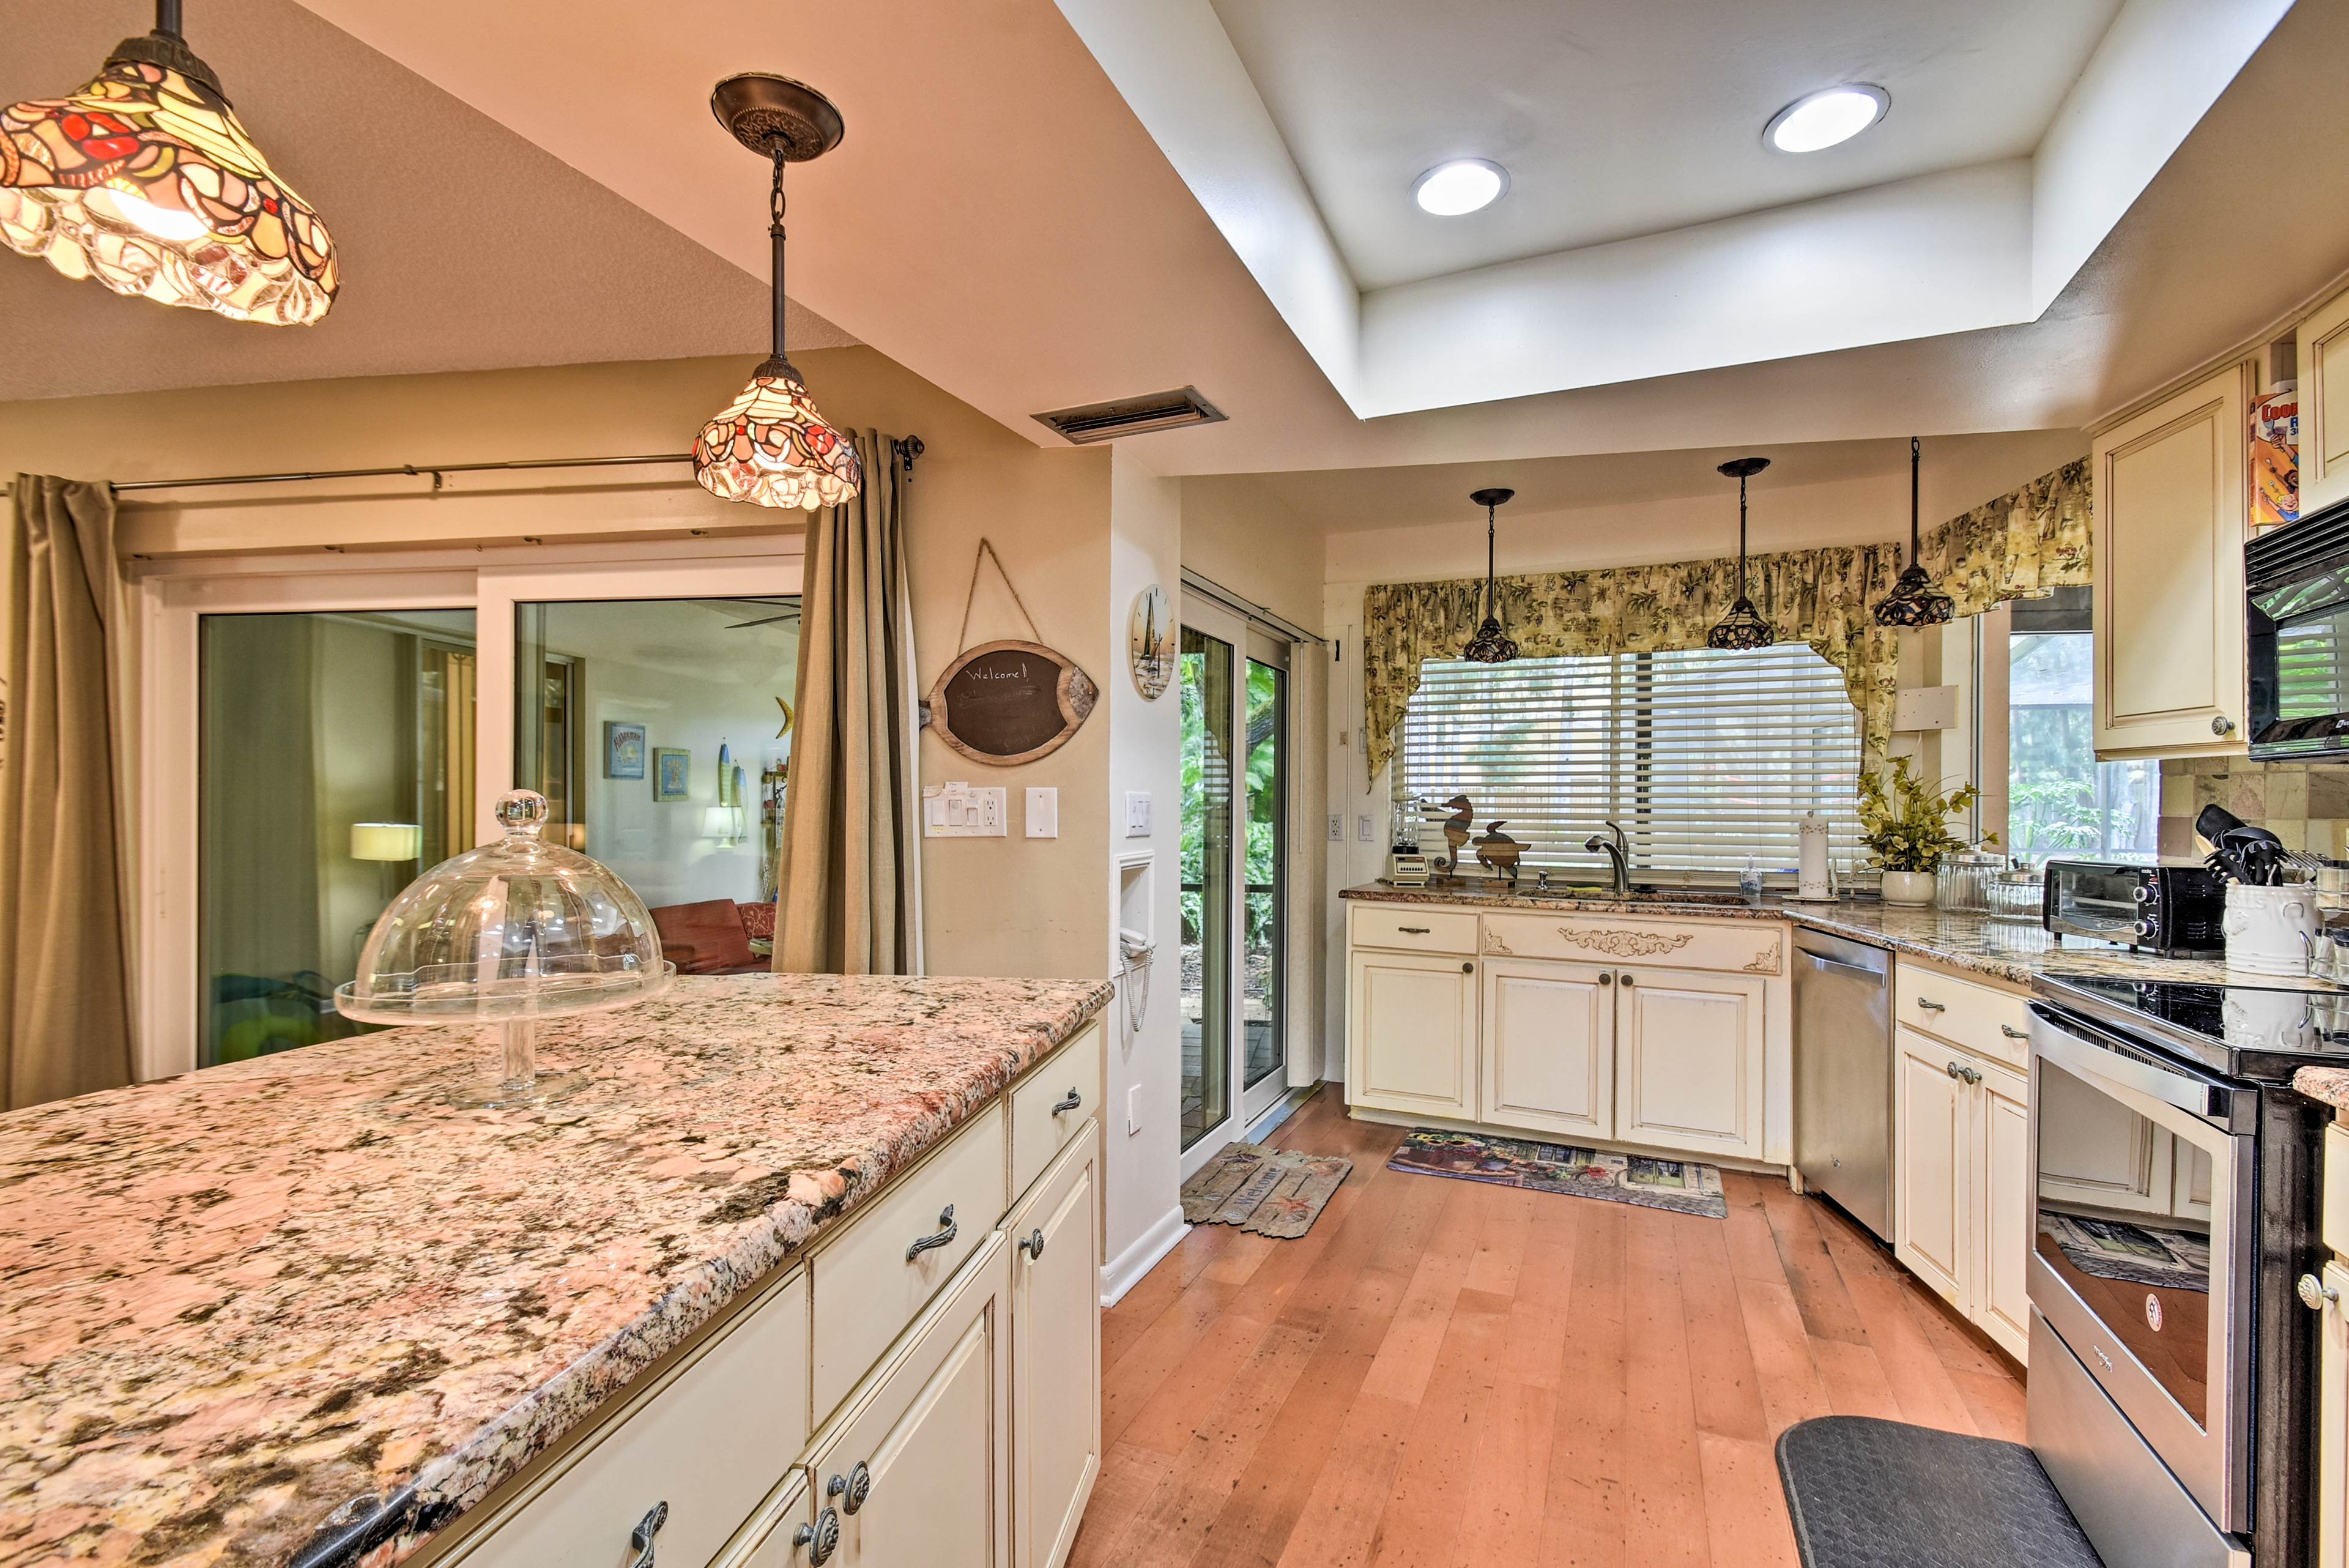 Granite counters hold all of the supplies you could need.